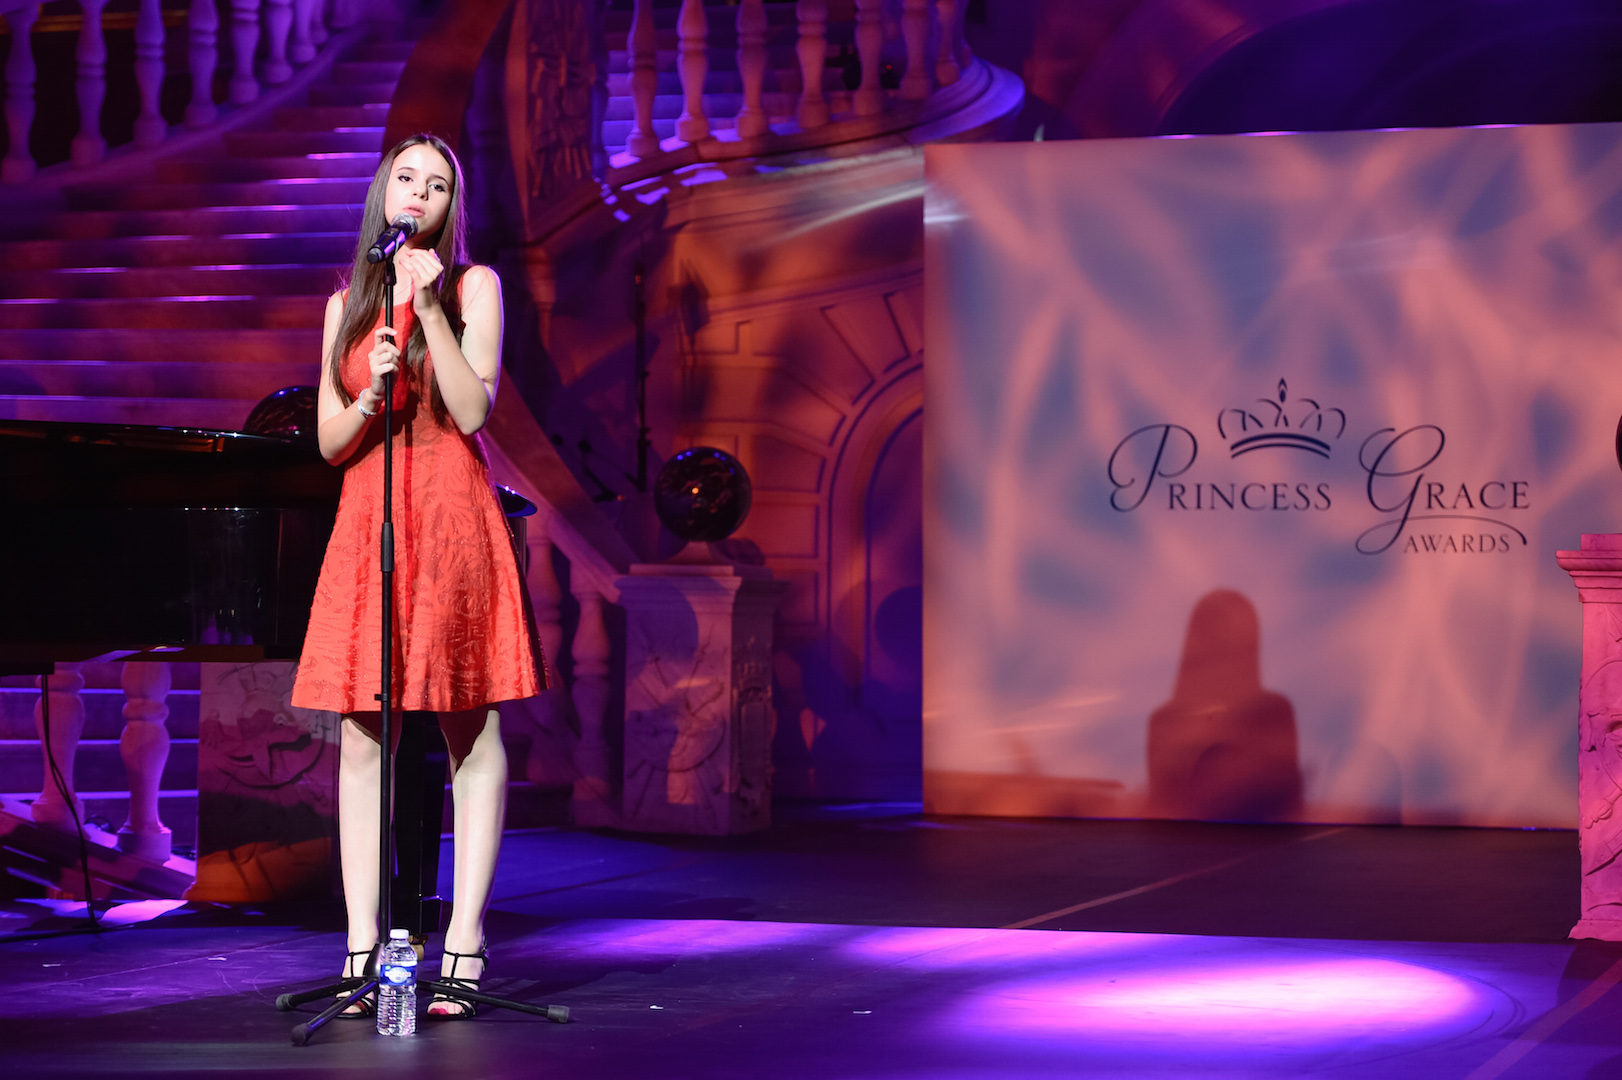 MONTE-CARLO, MONACO - SEPTEMBER 05:  Singer Marina Kaye performs during the 2015 Princess Grace Awards Gala With Presenting Sponsor Christian Dior Couture at Monaco Palace on September 5, 2015 in Monte-Carlo, Monaco.  (Photo by Pascal Le Segretain/Getty Images for Princess Grace Foundation-USA)